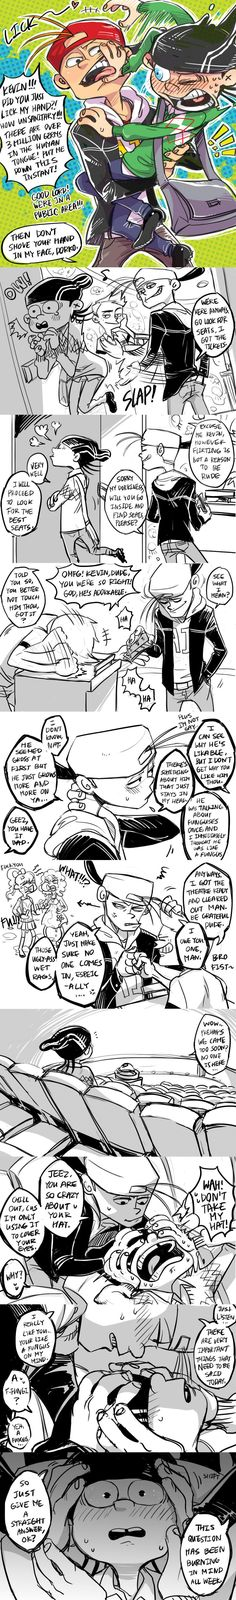 +KEVEDD+ by C2ndy2c1d.deviantart.com on @deviantART || part four :) ((can't find part three, sorry T^T)